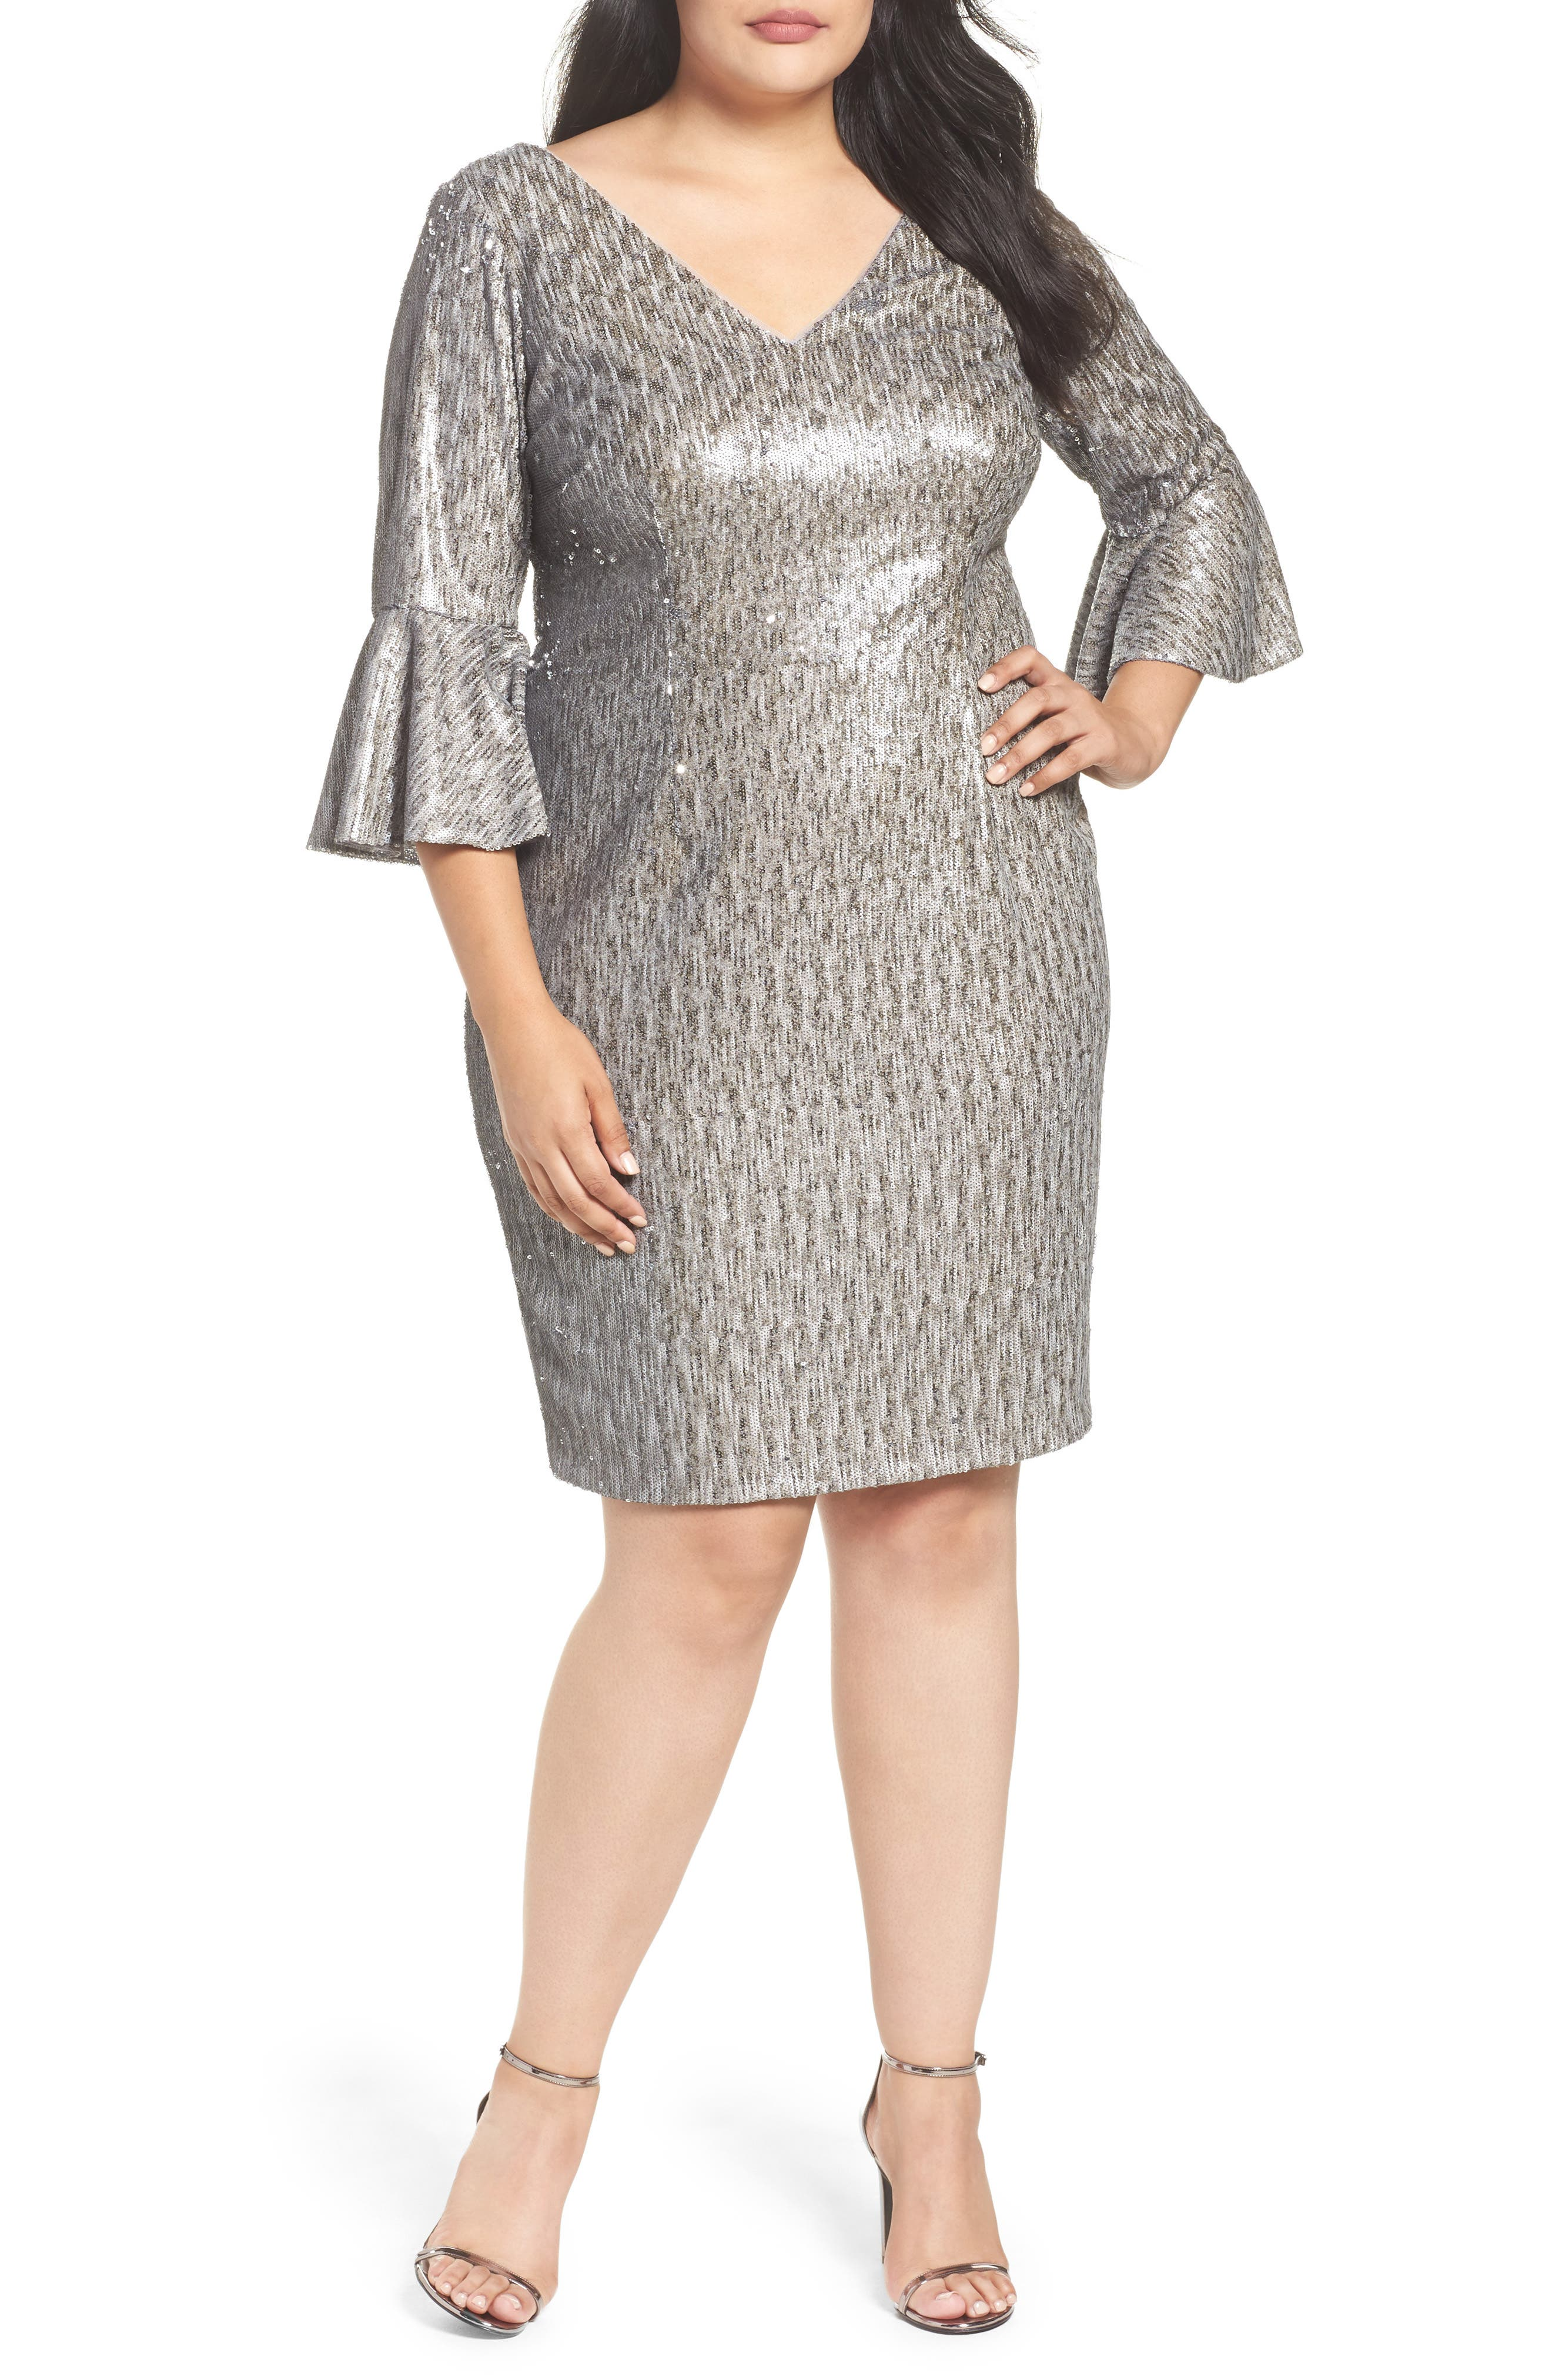 Alternate Image 1 Selected - Adrianna Papell Bell Sleeve Sequin Sheath Dress (Plus Size)